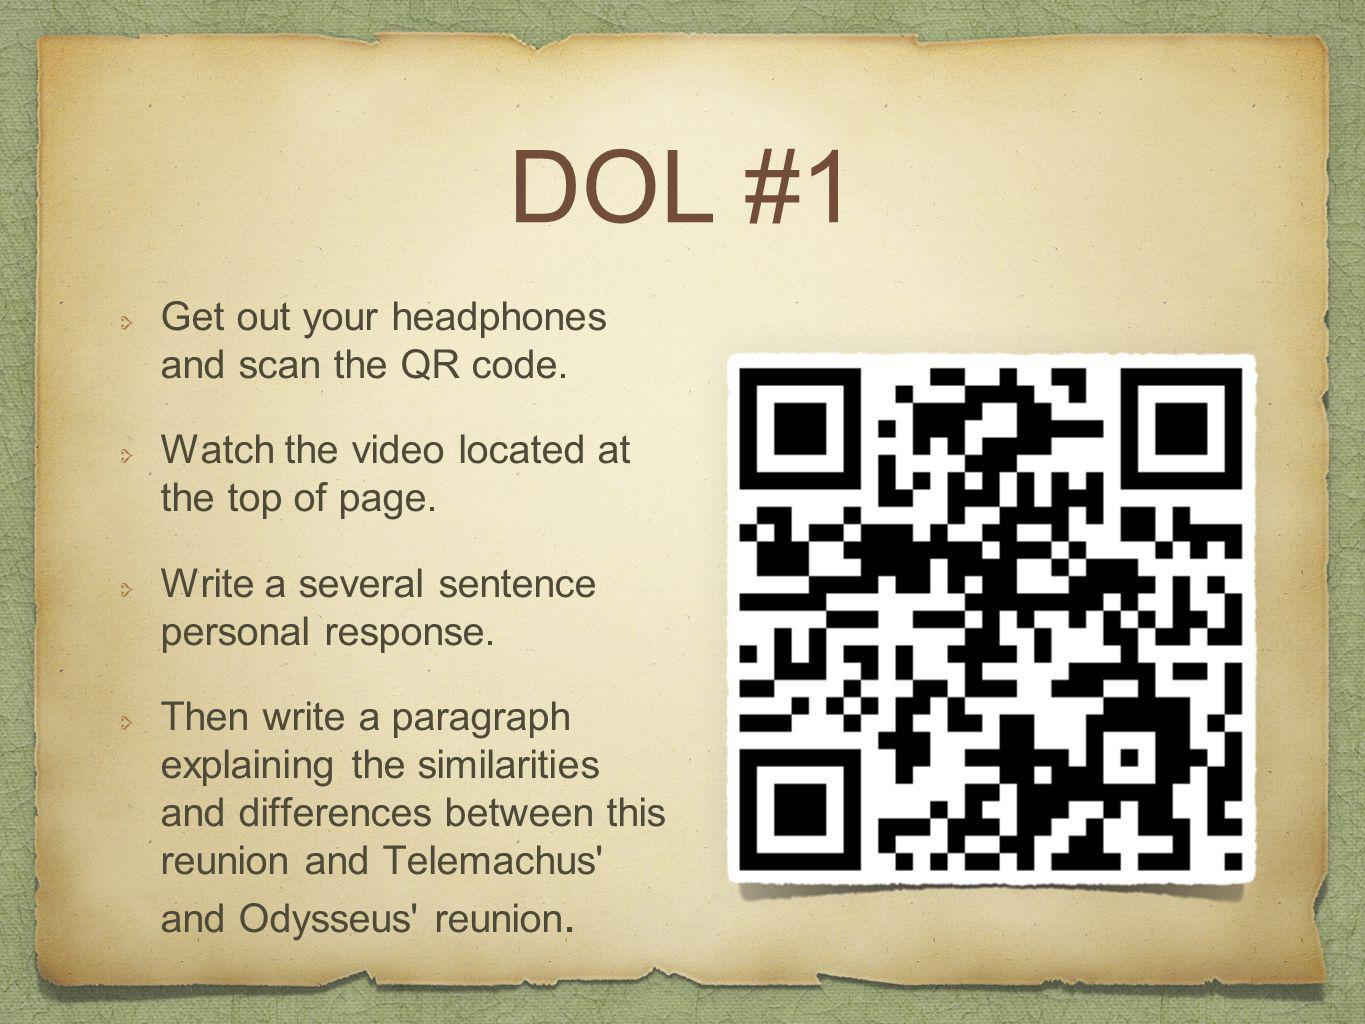 DOL #1 Get out your headphones and scan the QR code. Watch the video located at the top of page. Write a several sentence personal response. Then writ